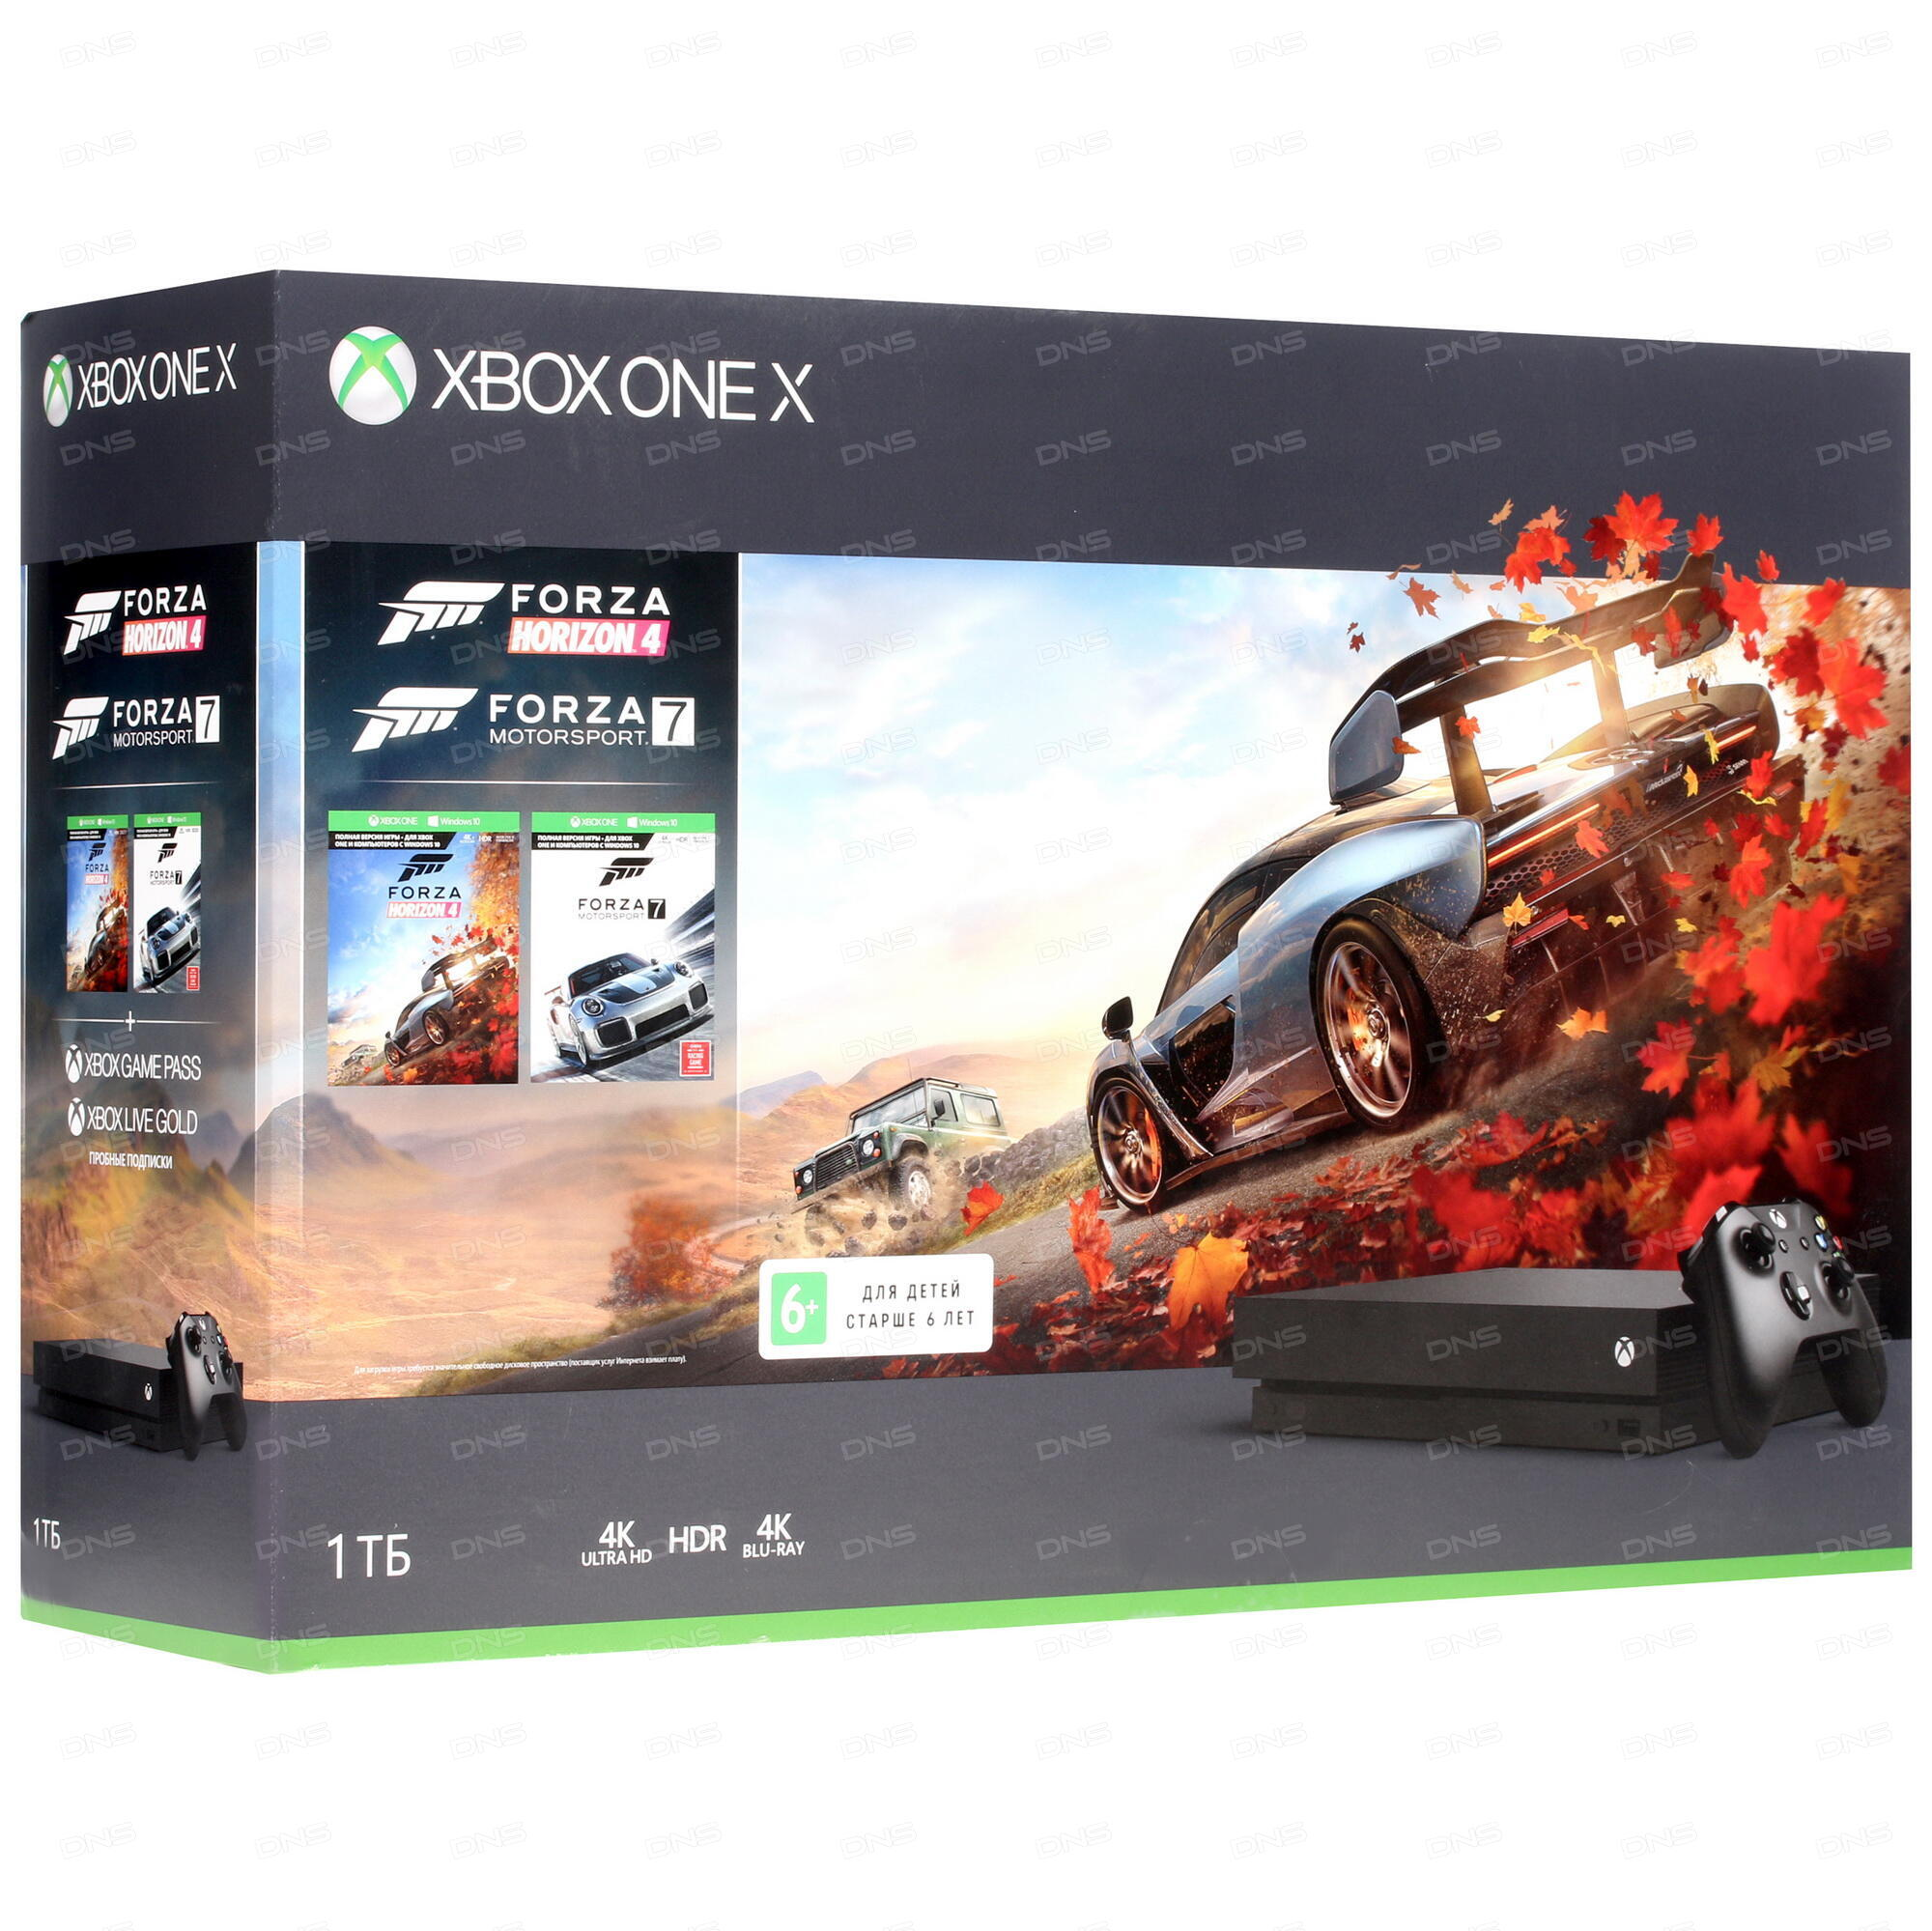 microsoft xbox one x forza. Black Bedroom Furniture Sets. Home Design Ideas